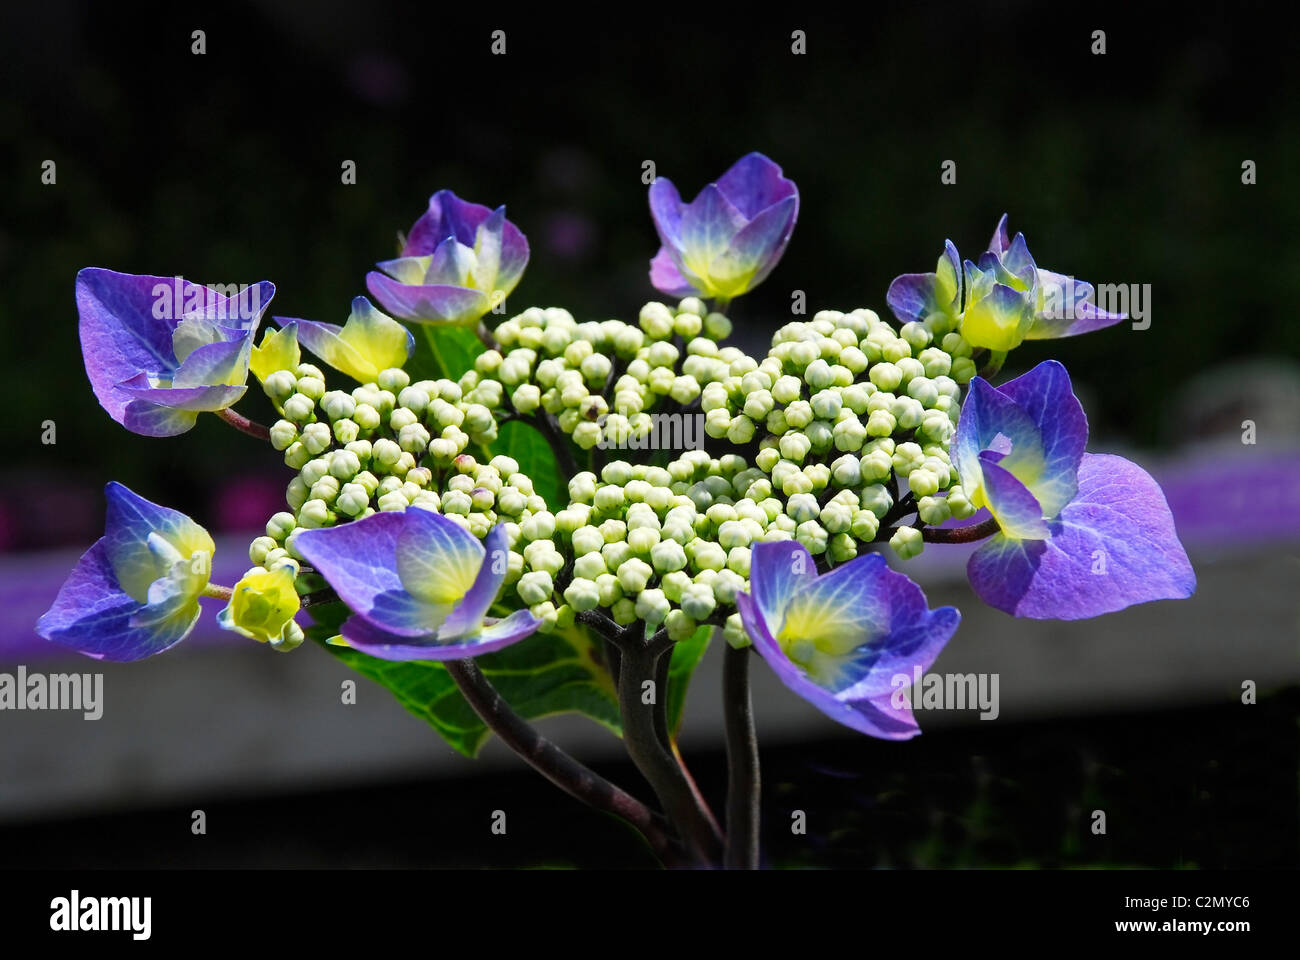 Common hydrangea on black background - Stock Image